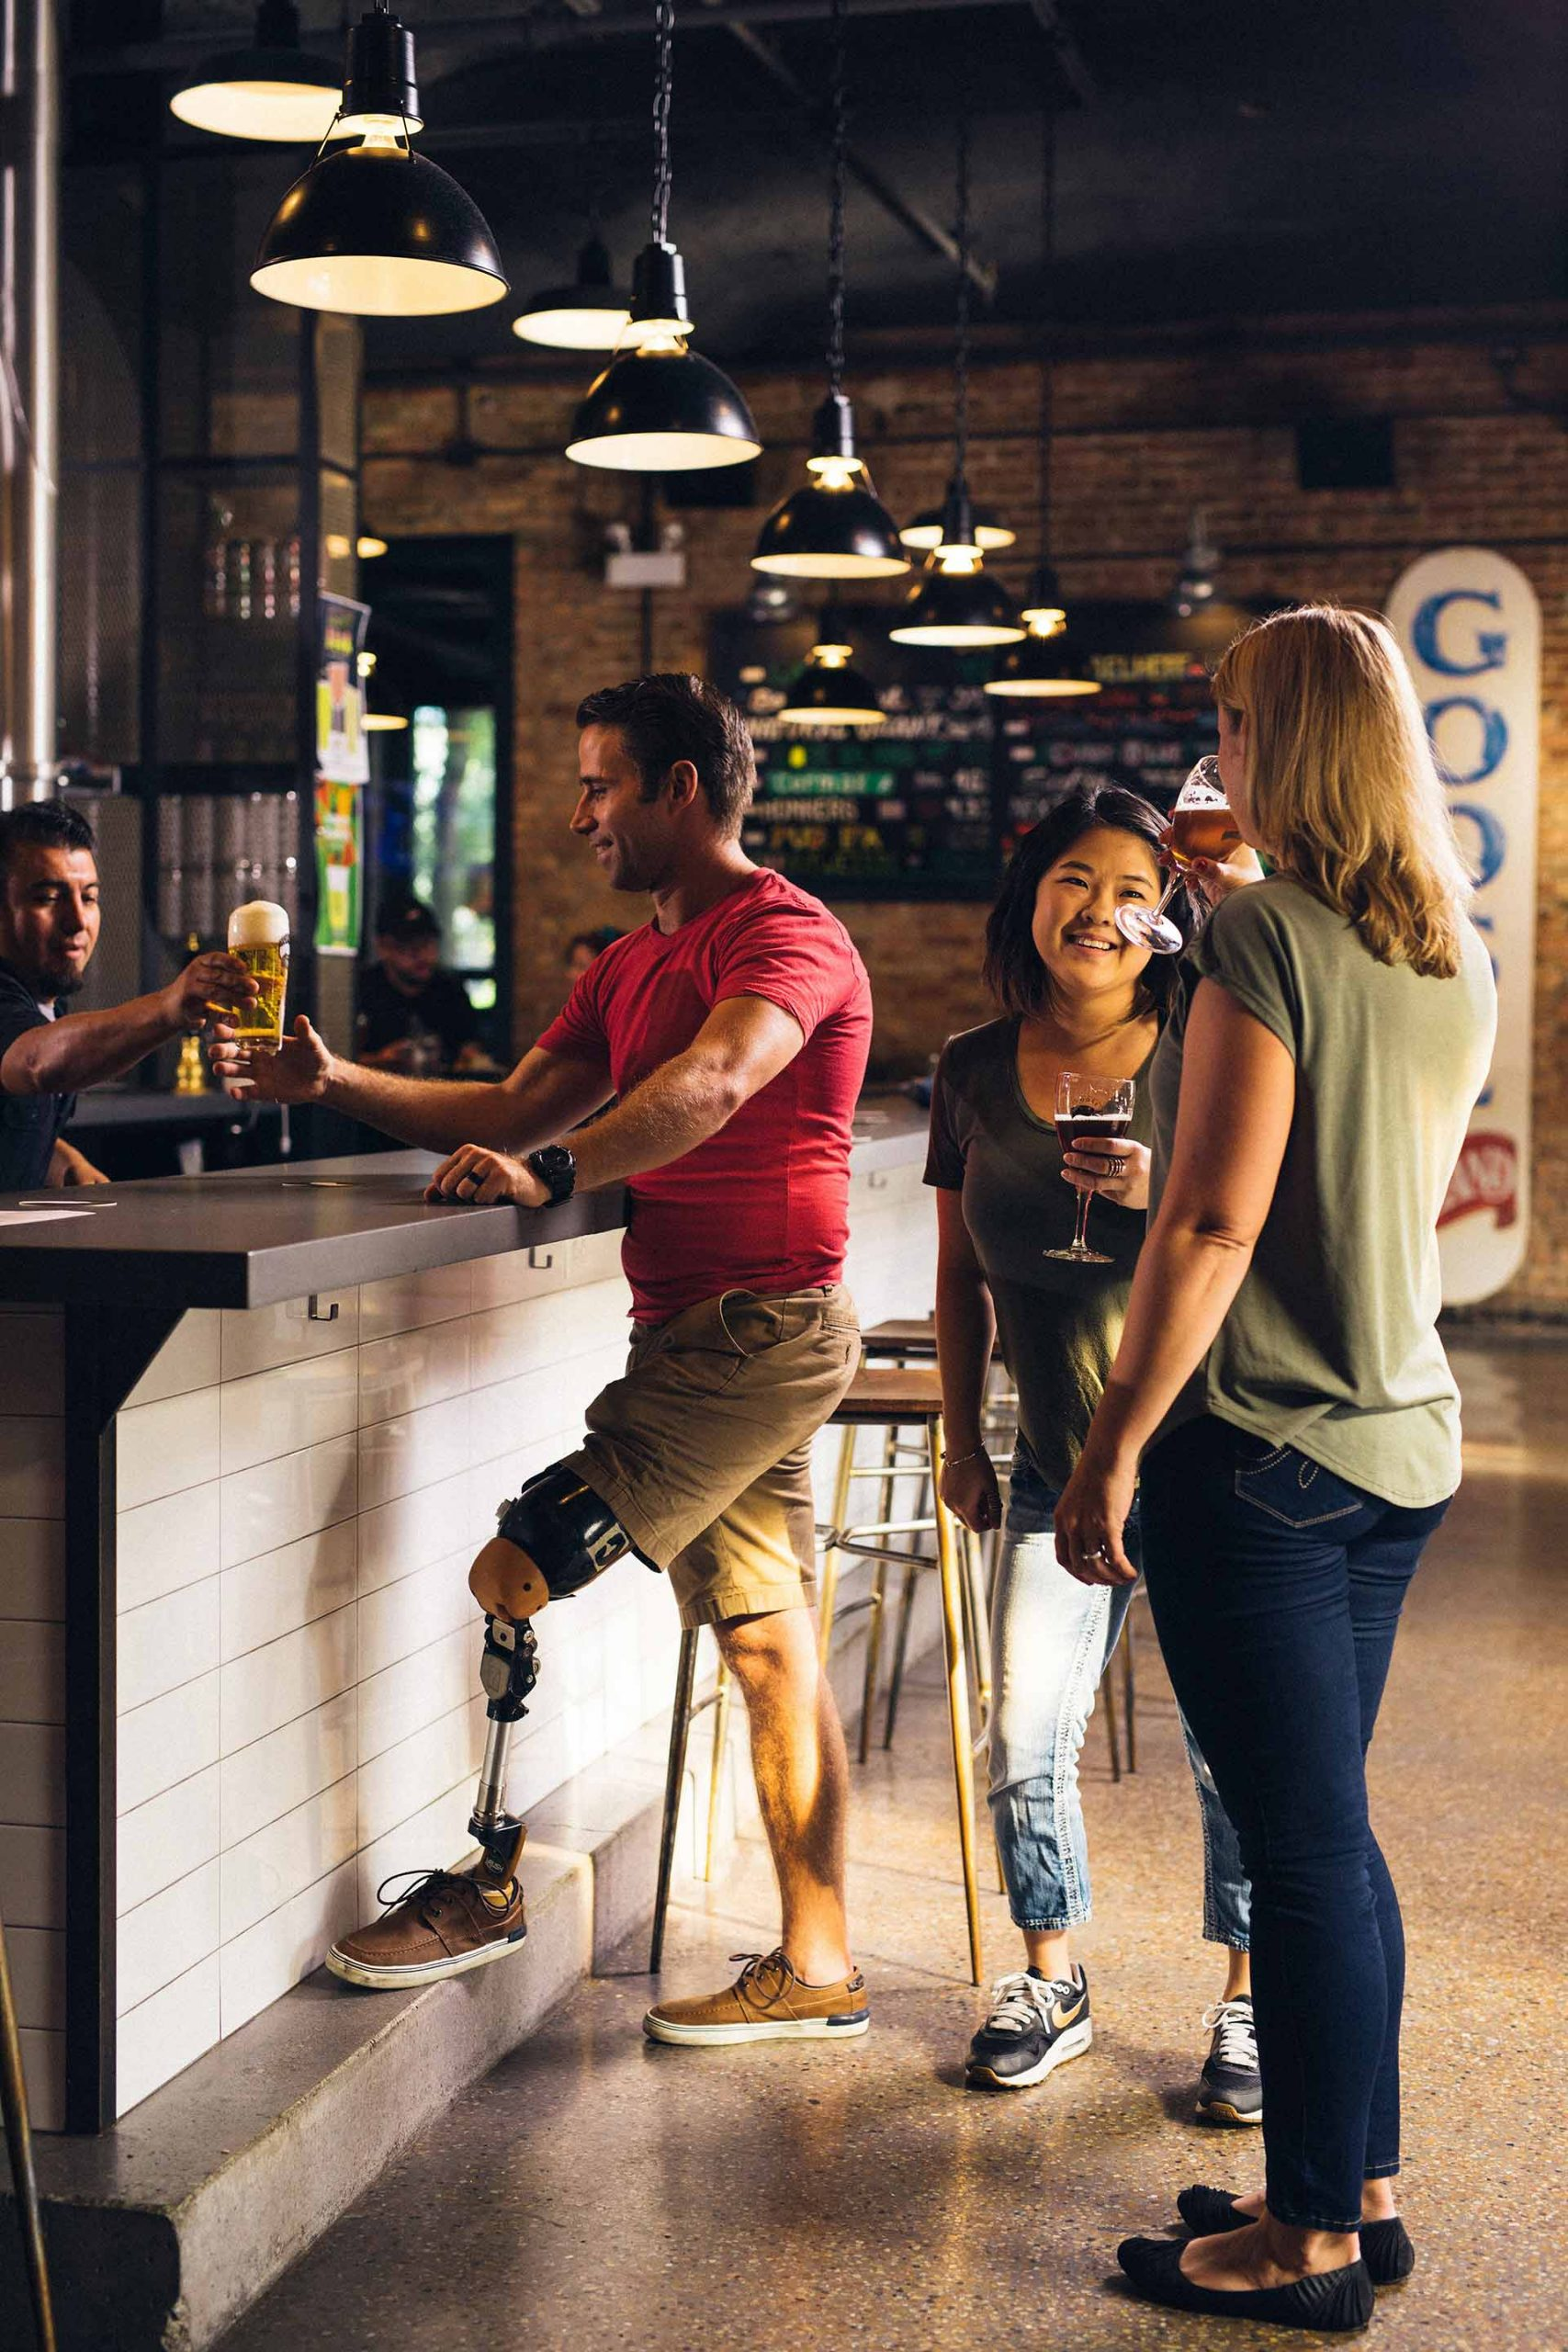 man with prosthetic leg buying beer with two women drinking wine at a bar